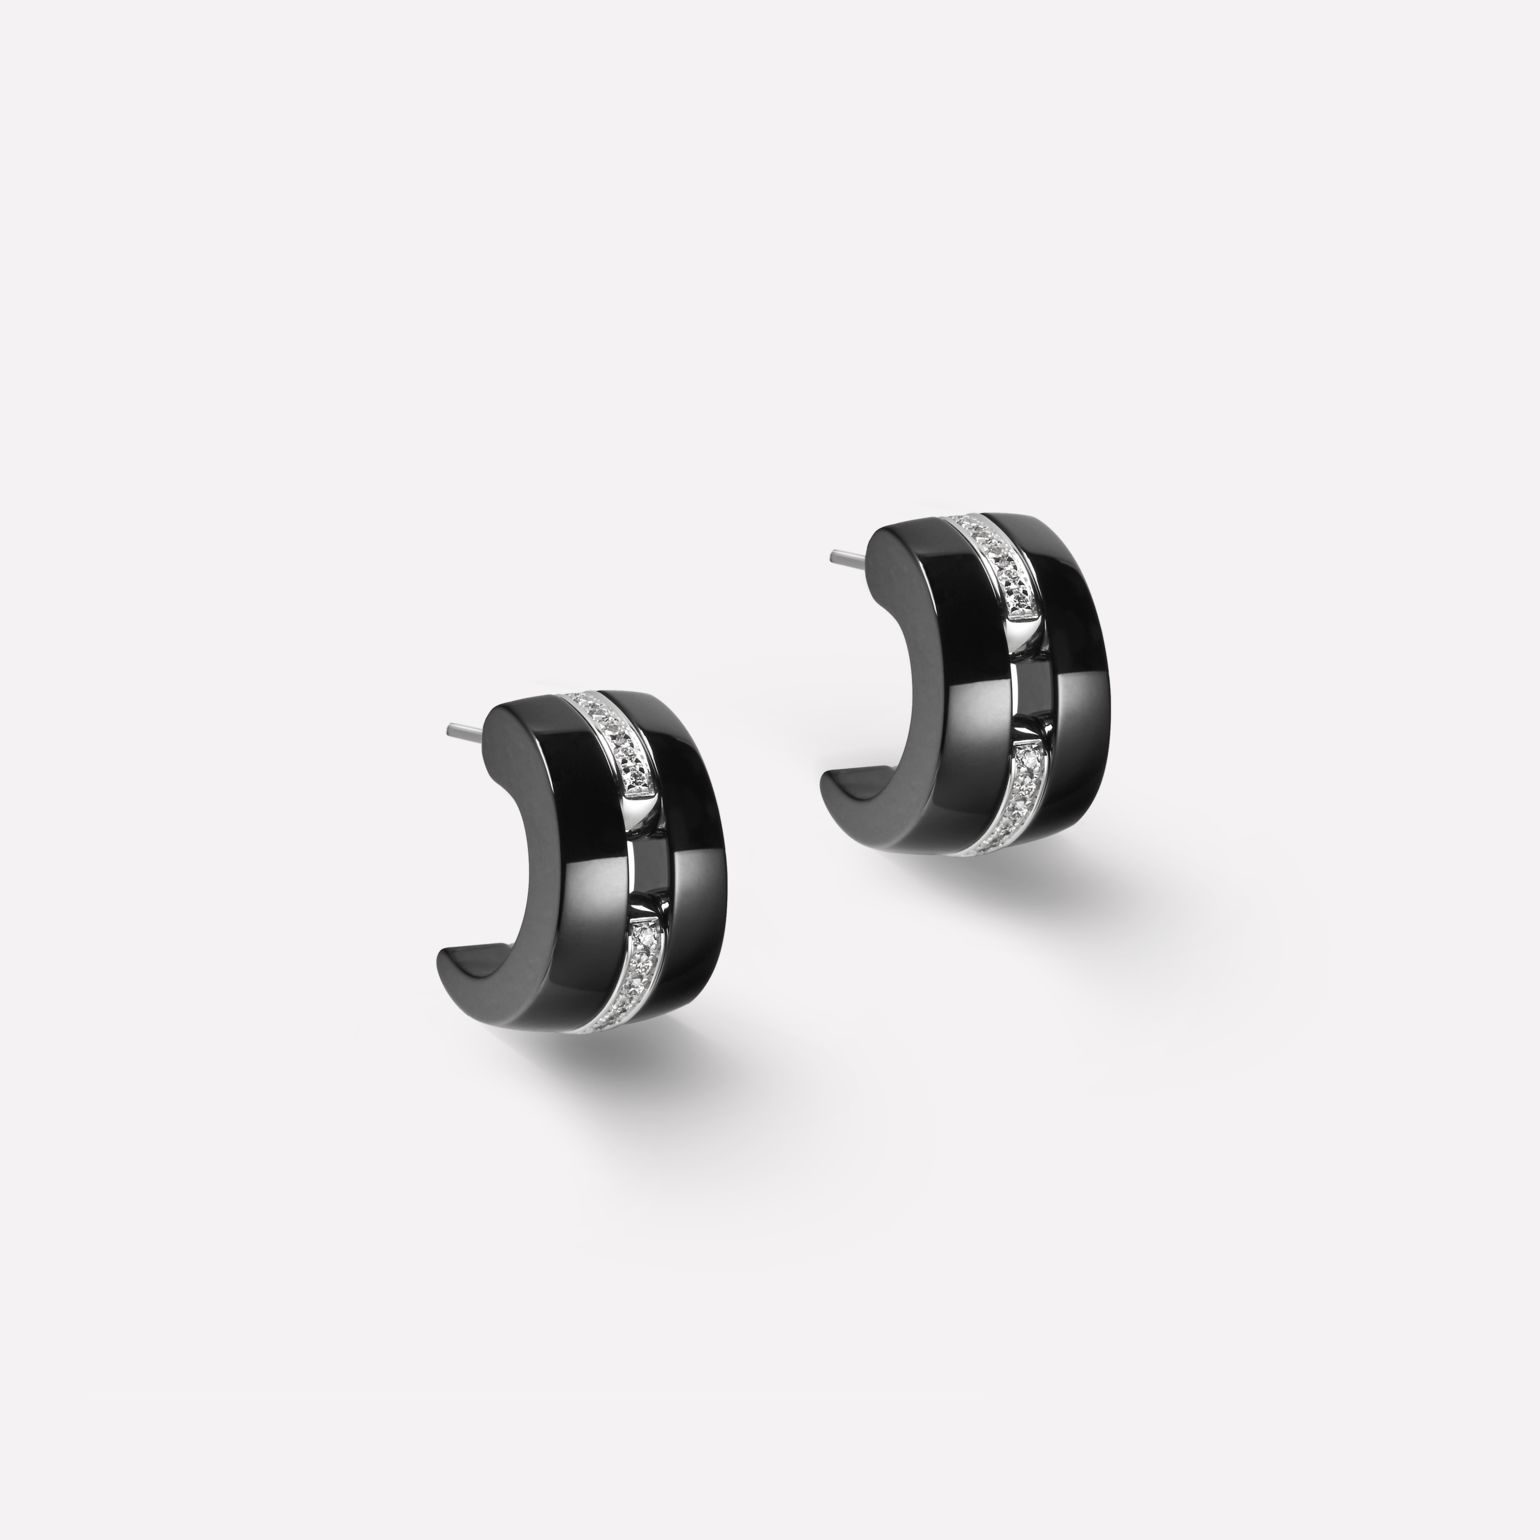 Ultra earrings Ultra earrings in black ceramic, 18K white gold, and diamonds